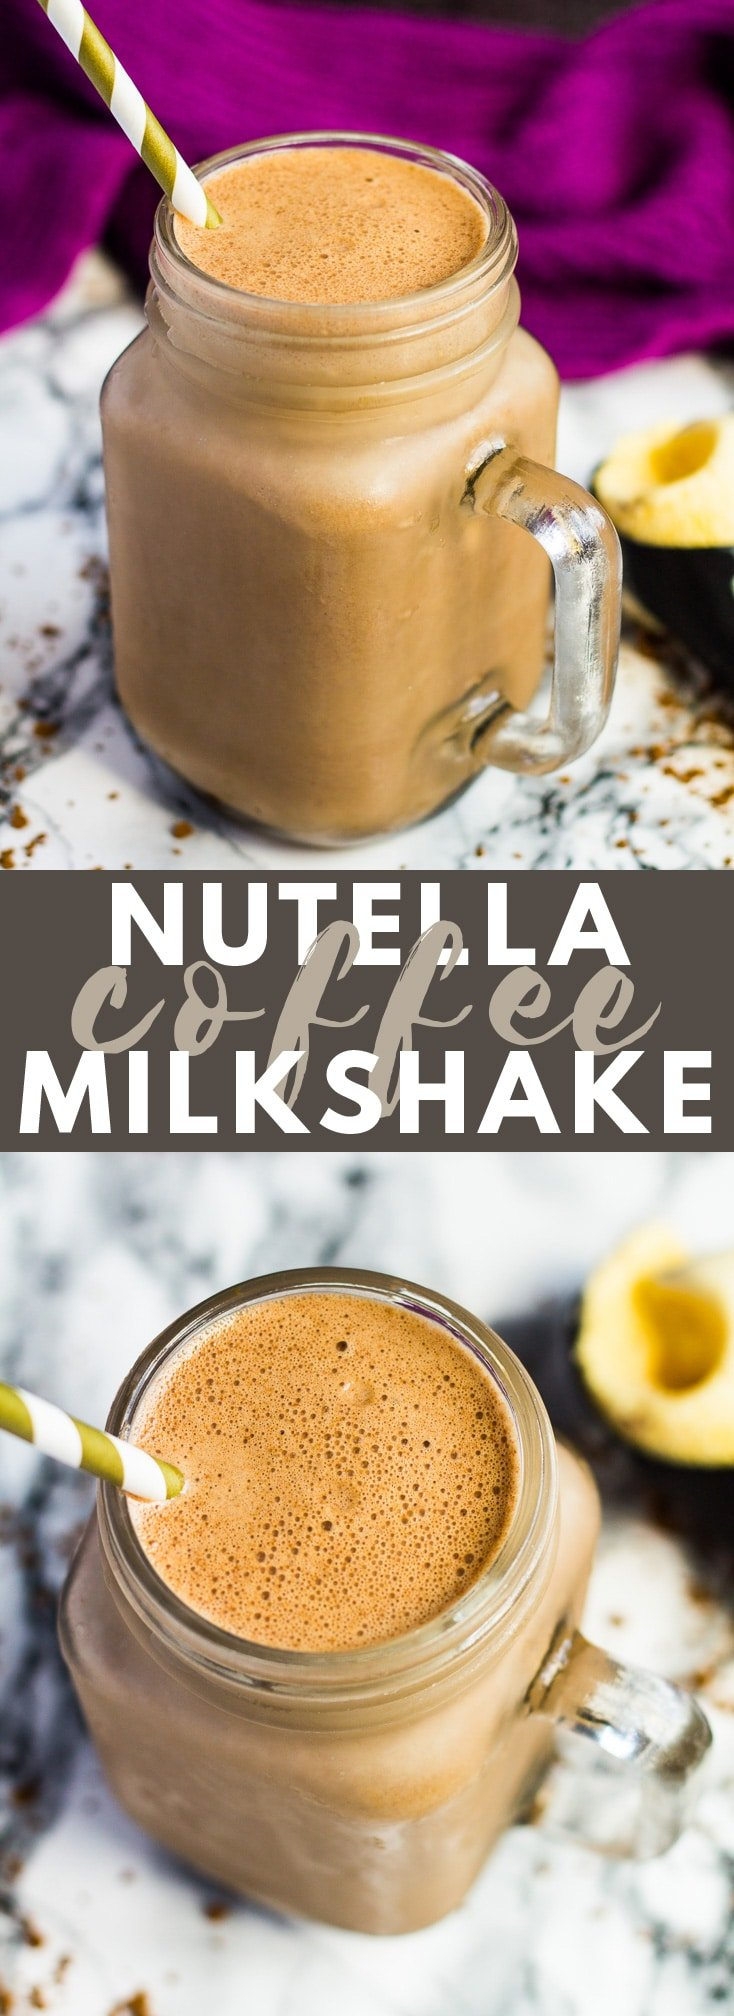 Nutella Coffee Milkshake - Deliciously creamy Nutella milkshake that is infused with coffee, and only requires 4 simple ingredients to make! #nutella #coffee #milkshake